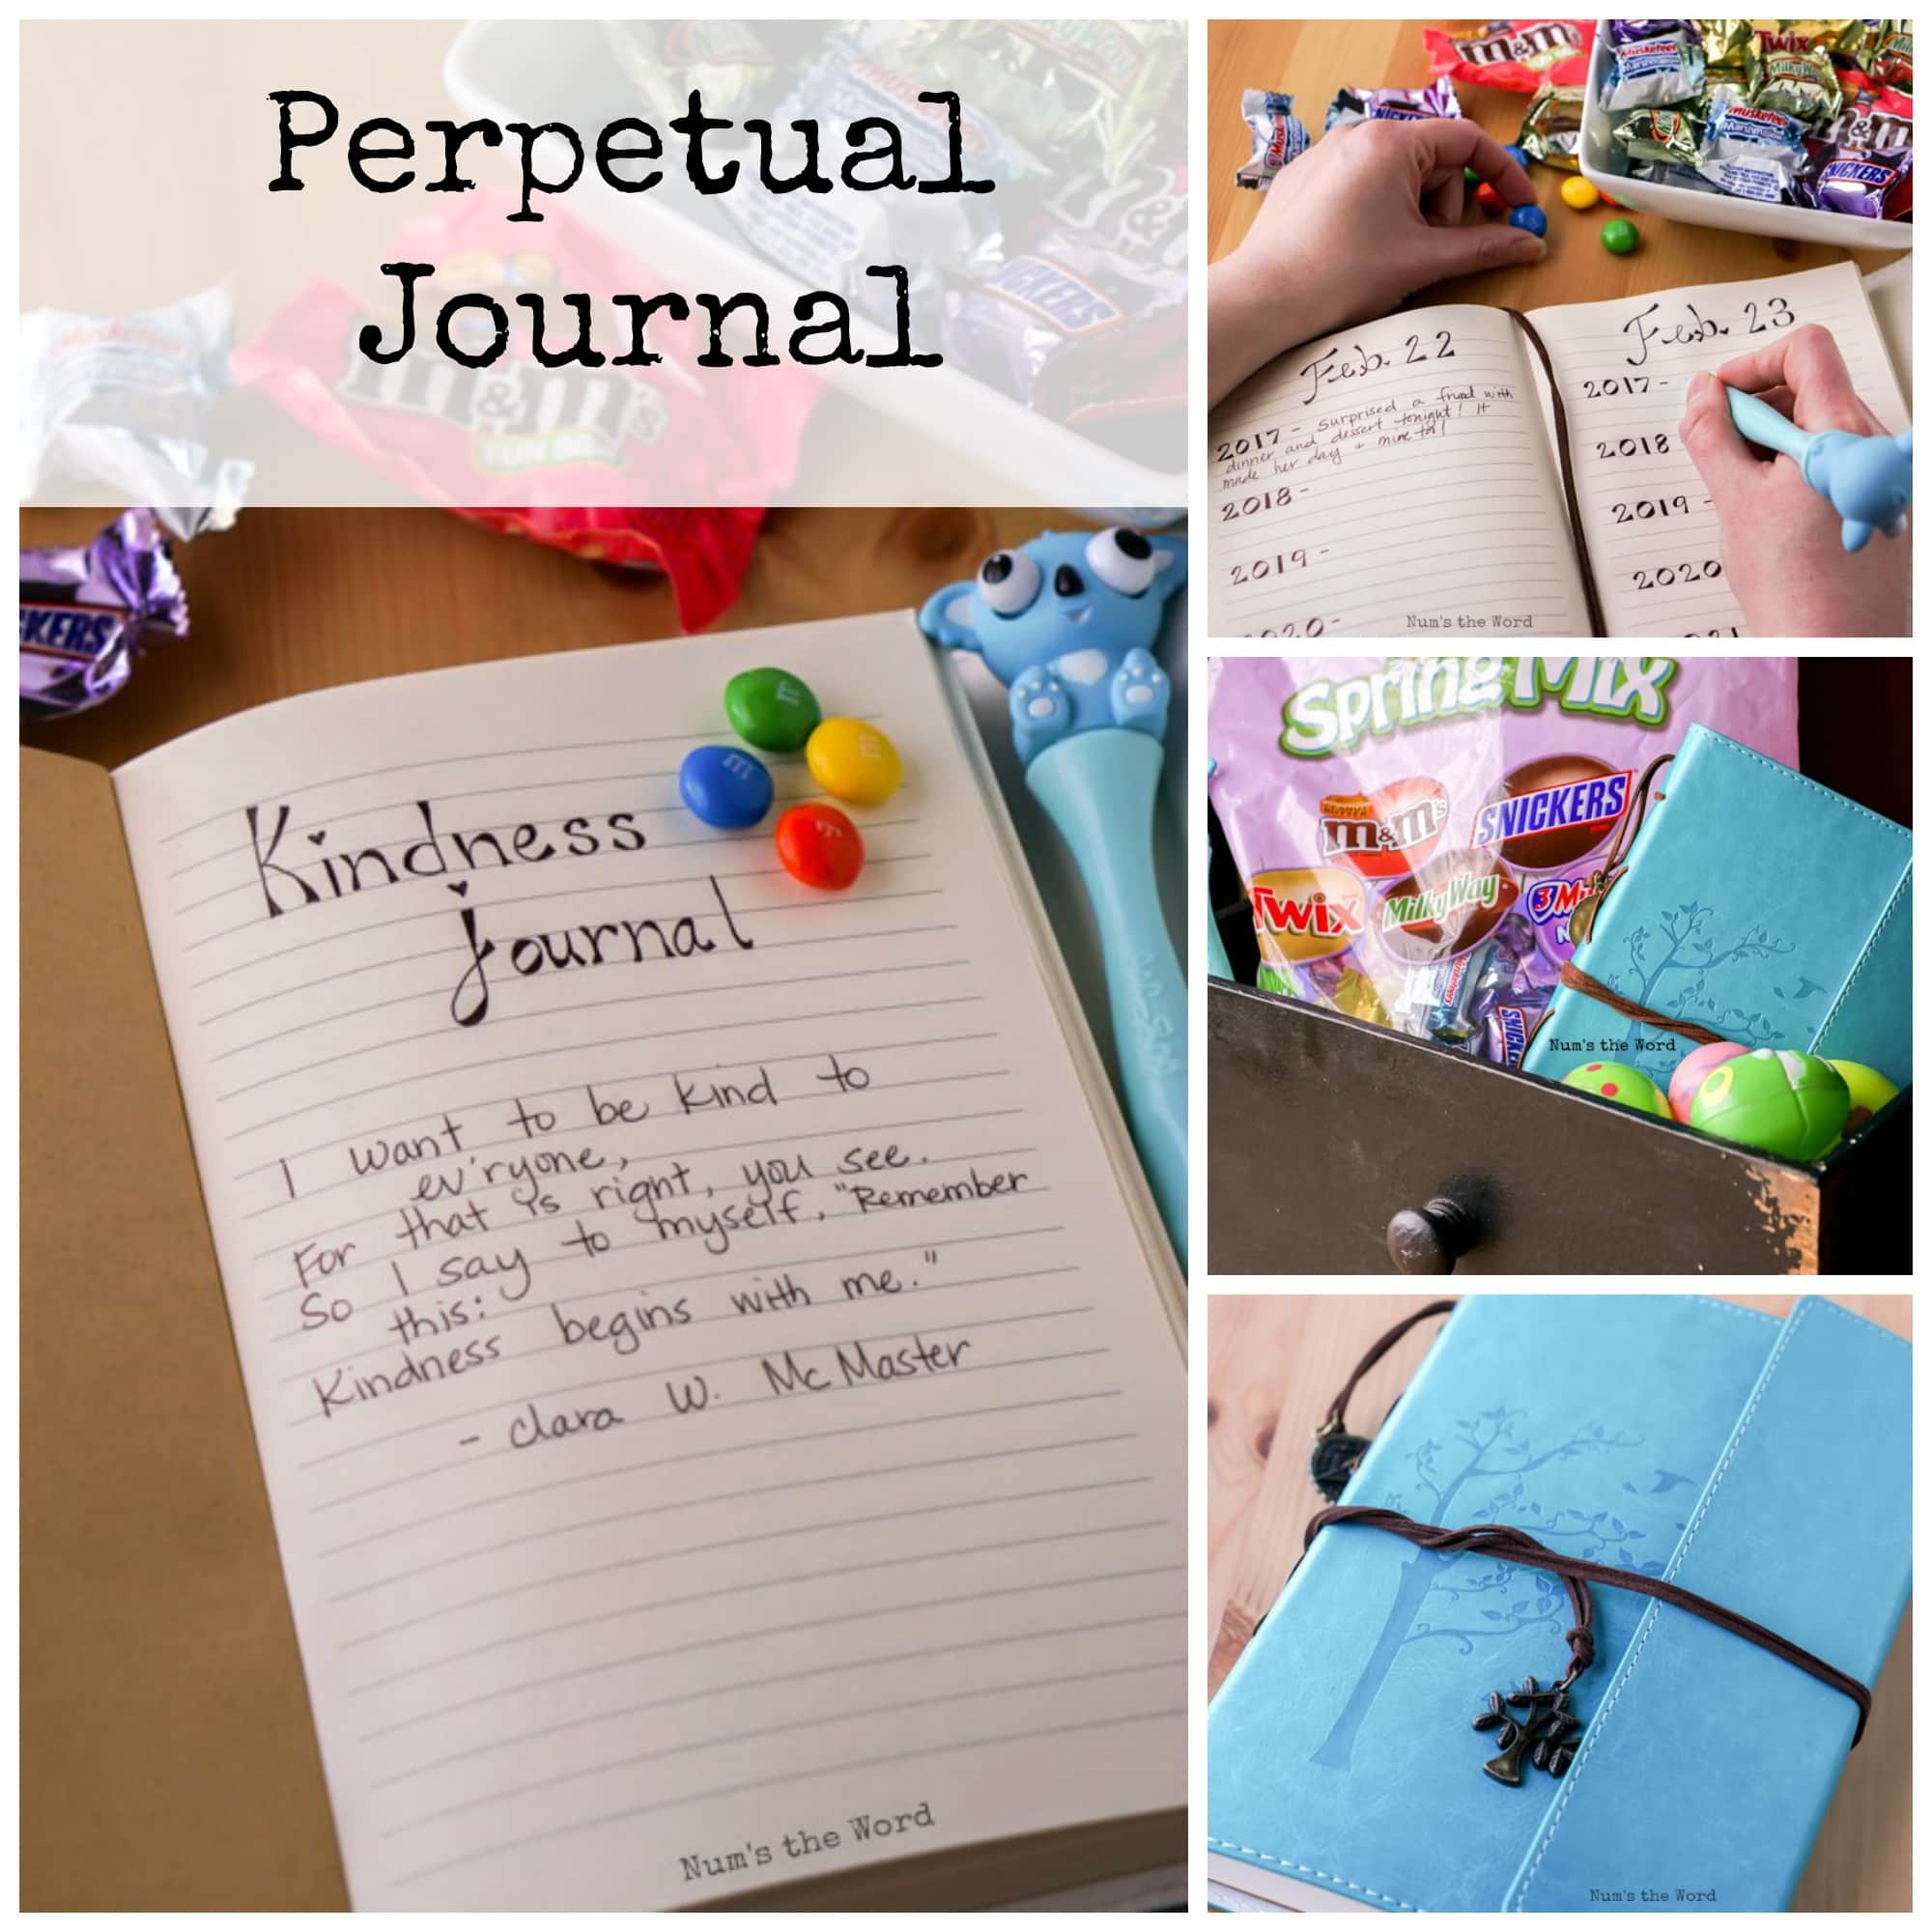 Perpetual Journal